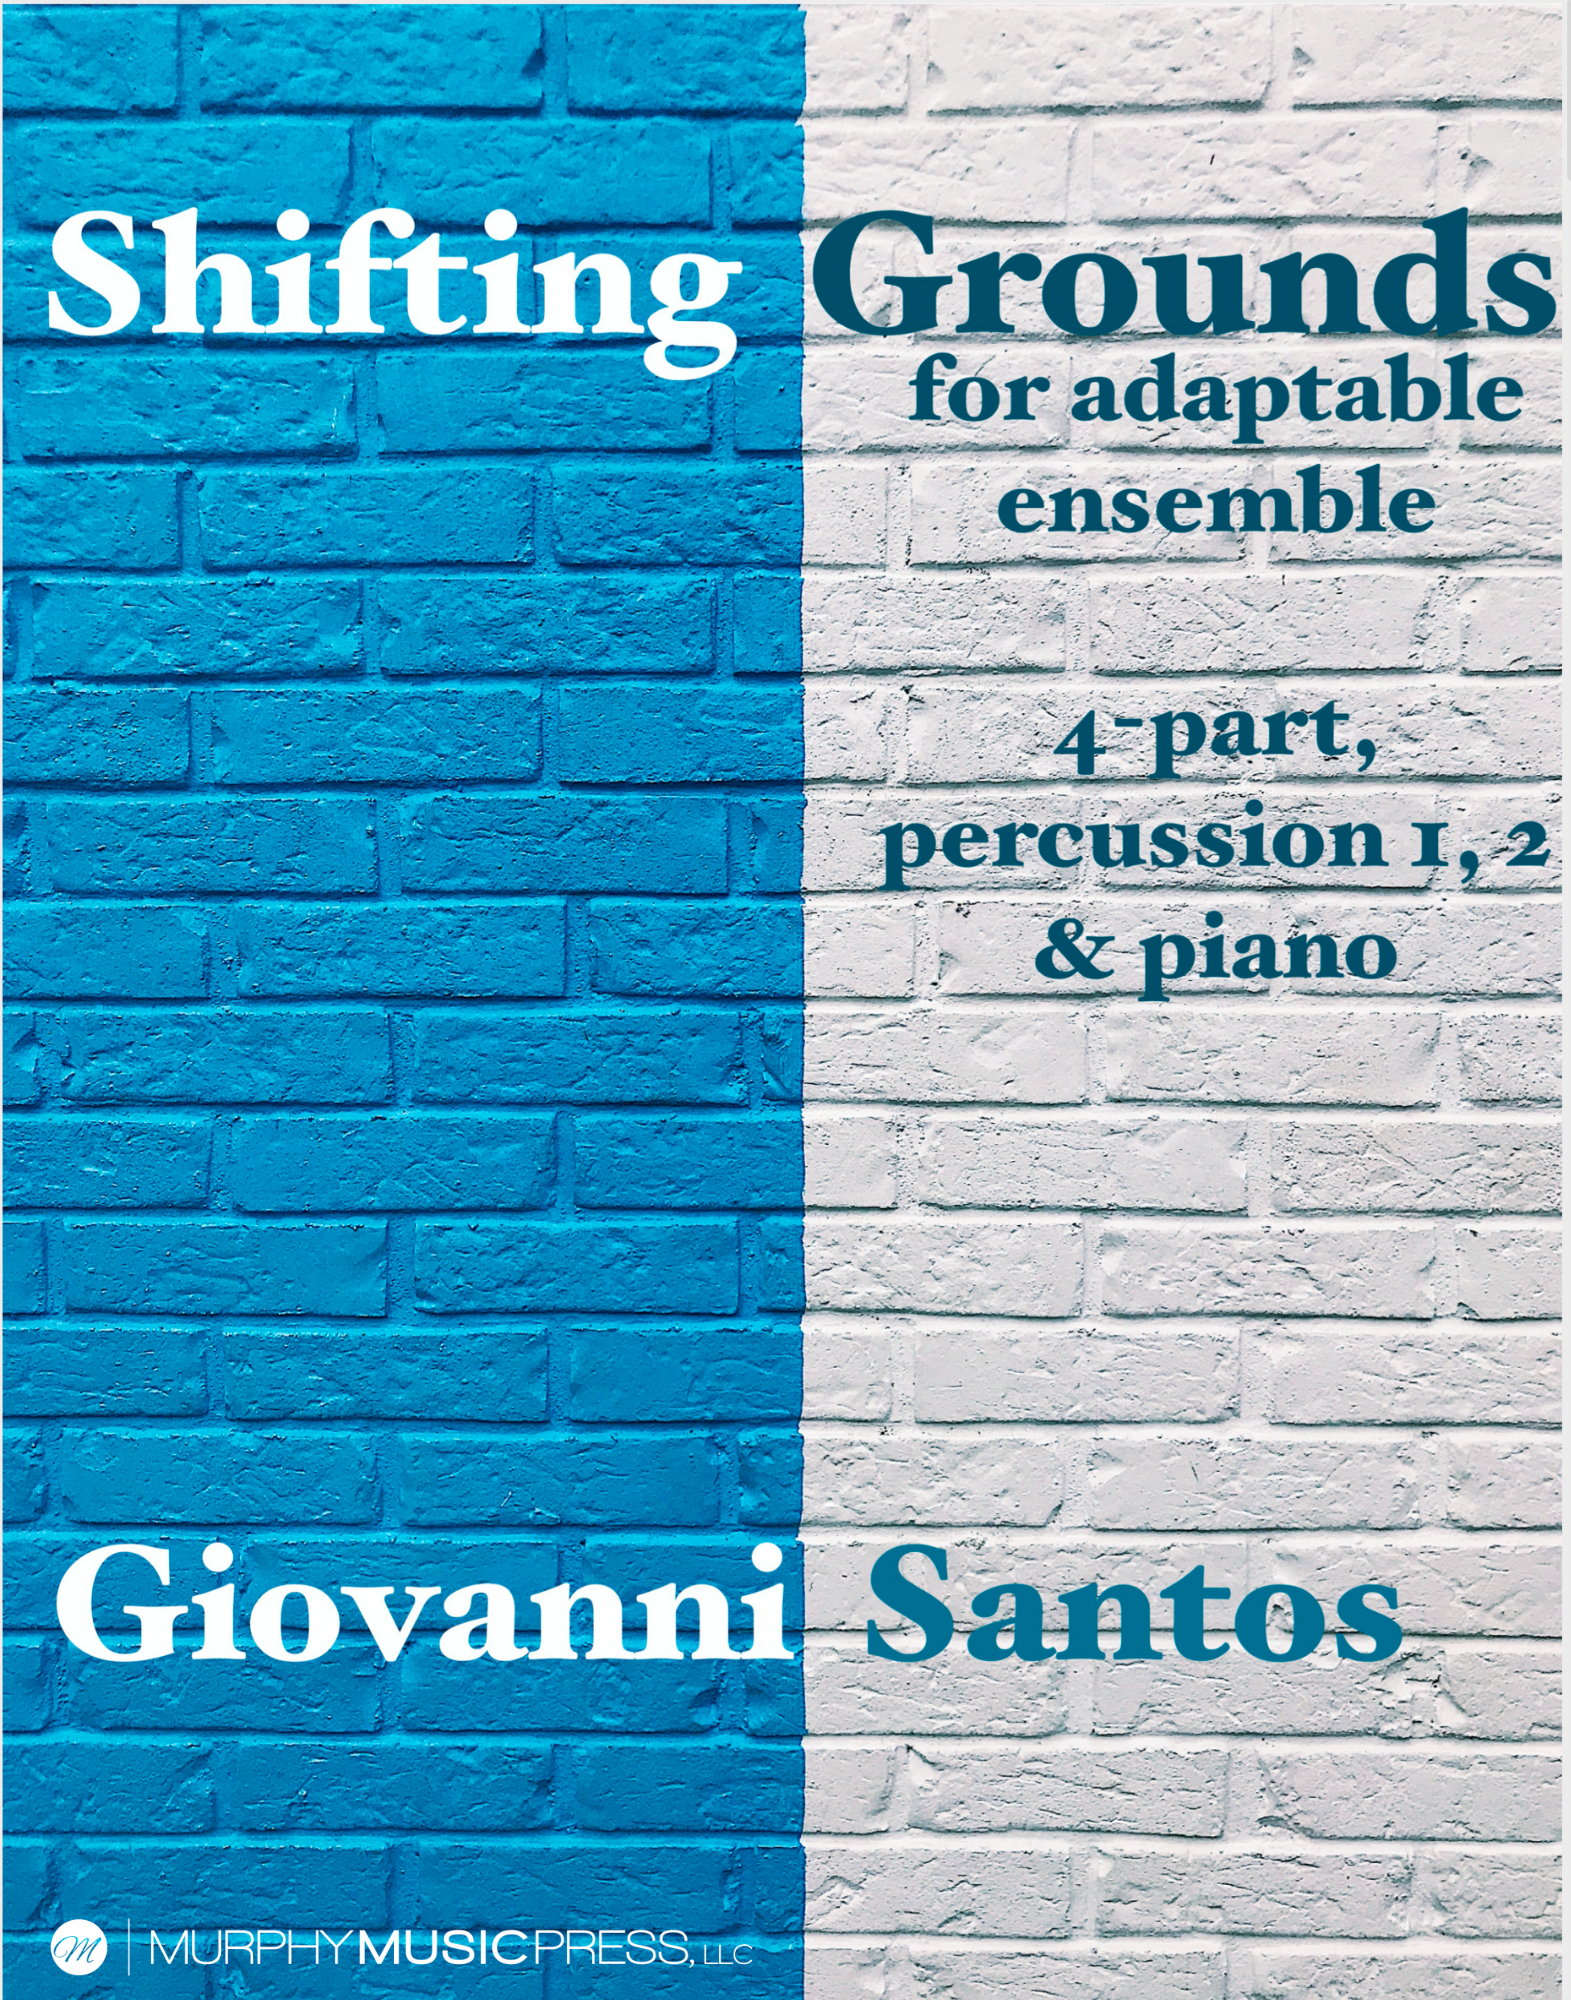 Shifting Grounds by Giovanni Santos